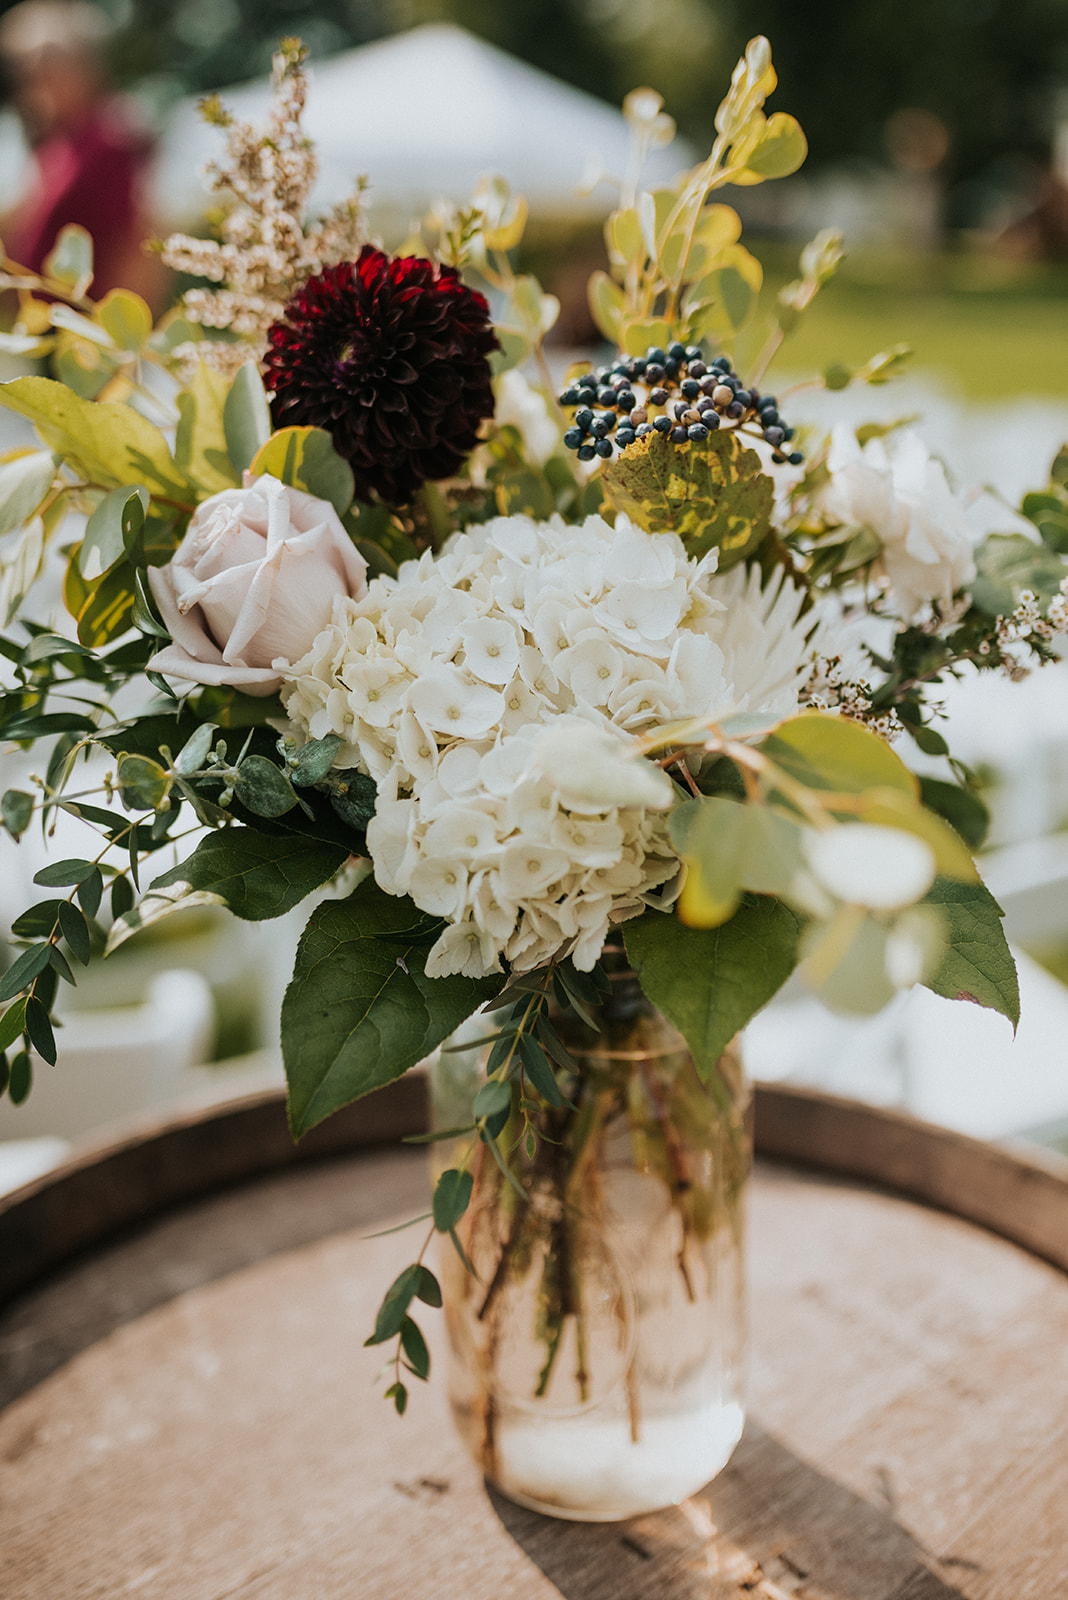 overthevineswisconsinwedding_0473.jpg